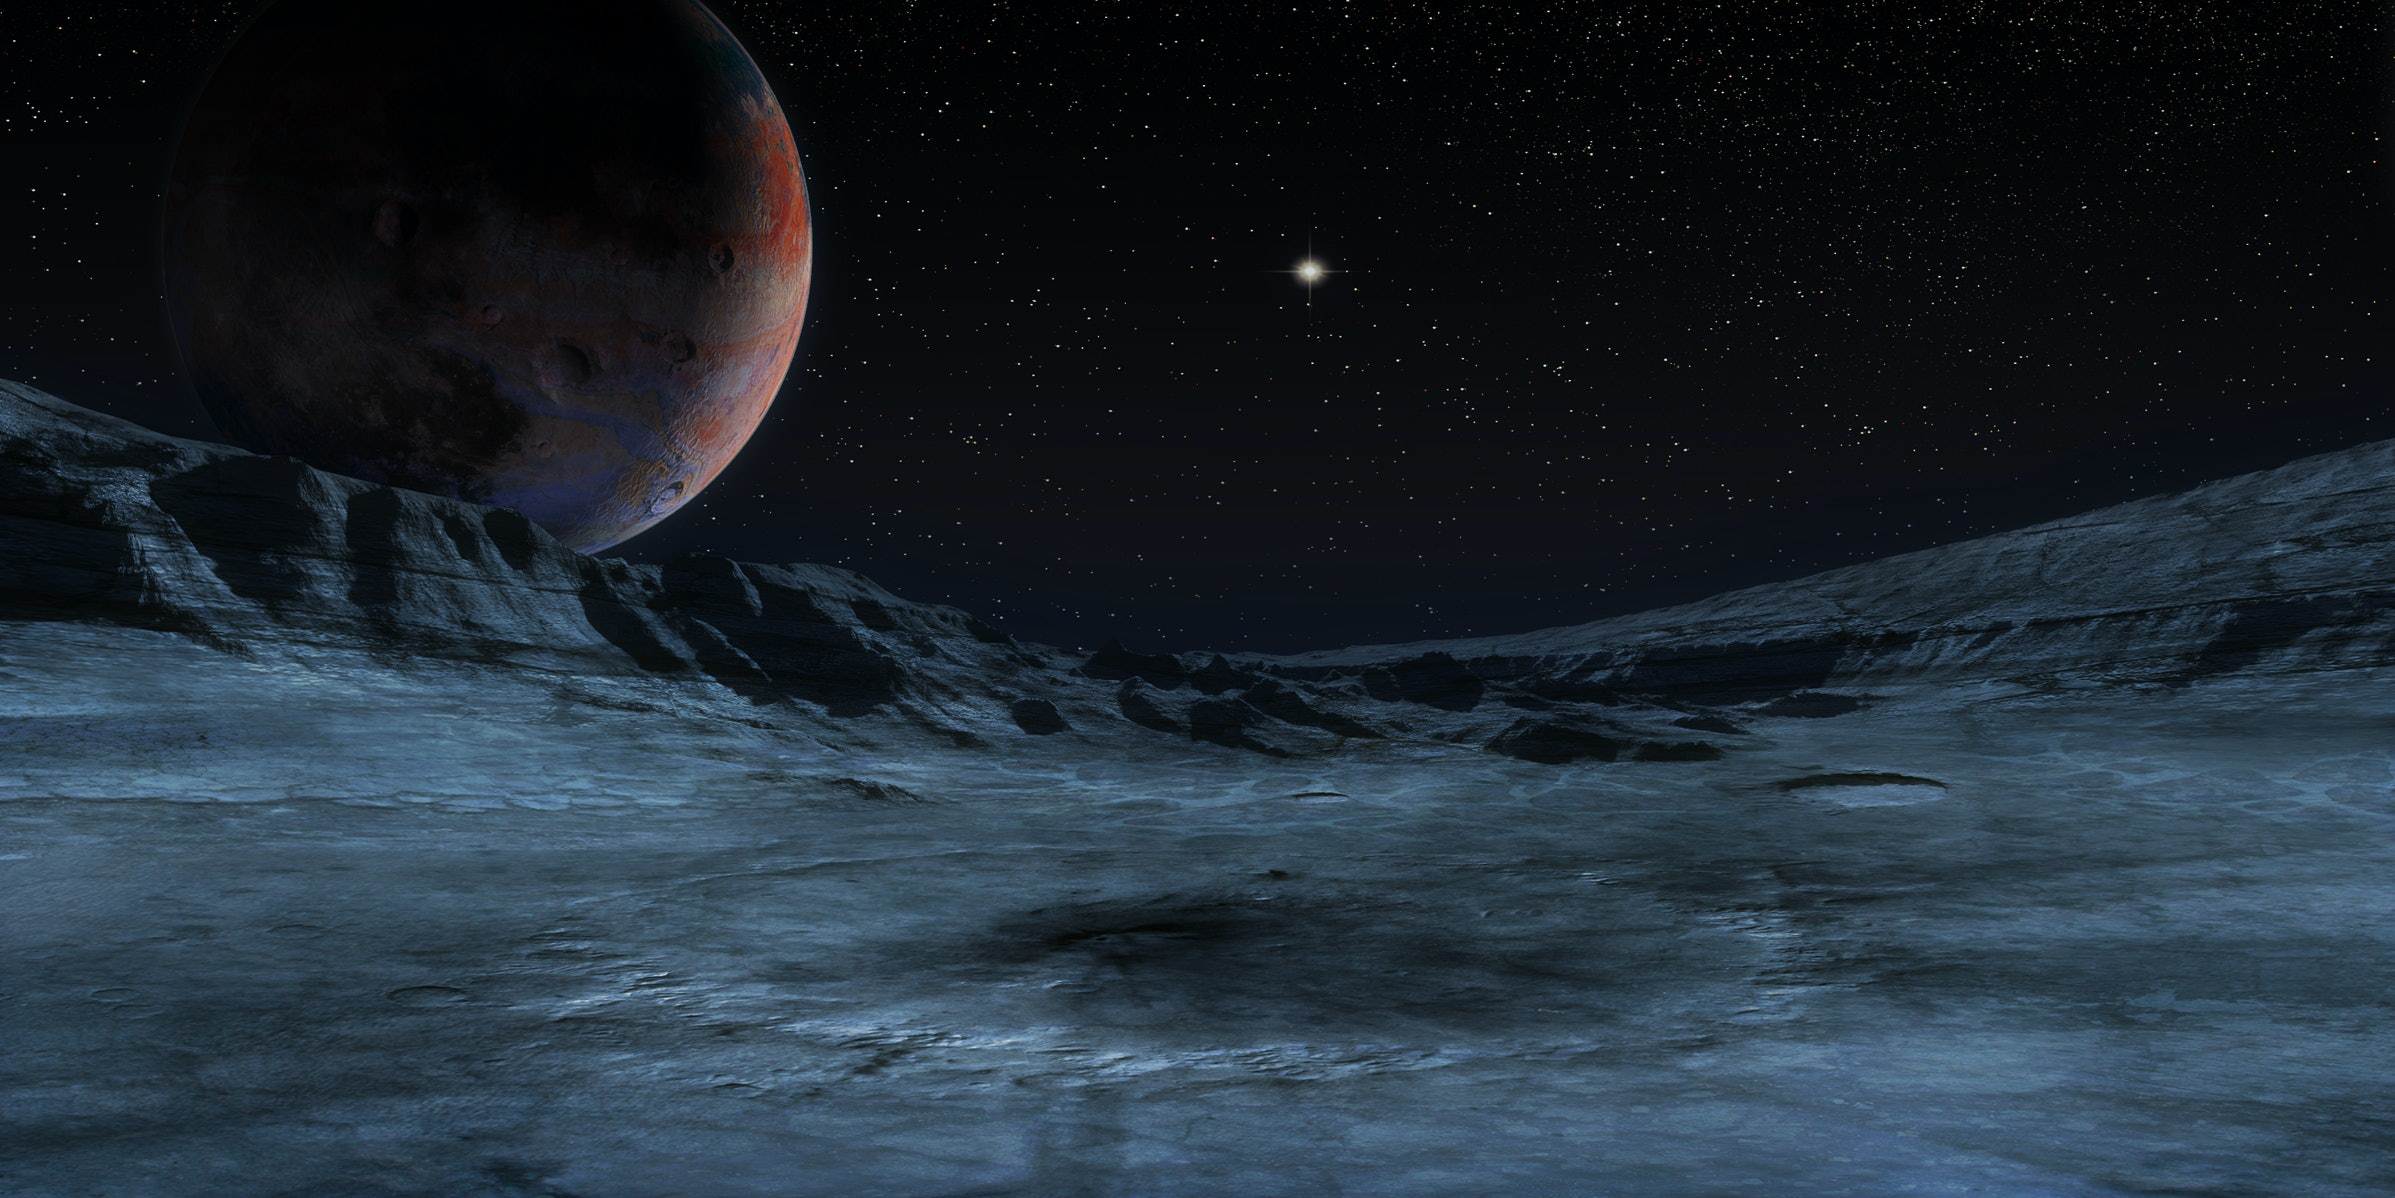 Making Pluto a Planet Could Give the Solar System a Whopping 110 Planets